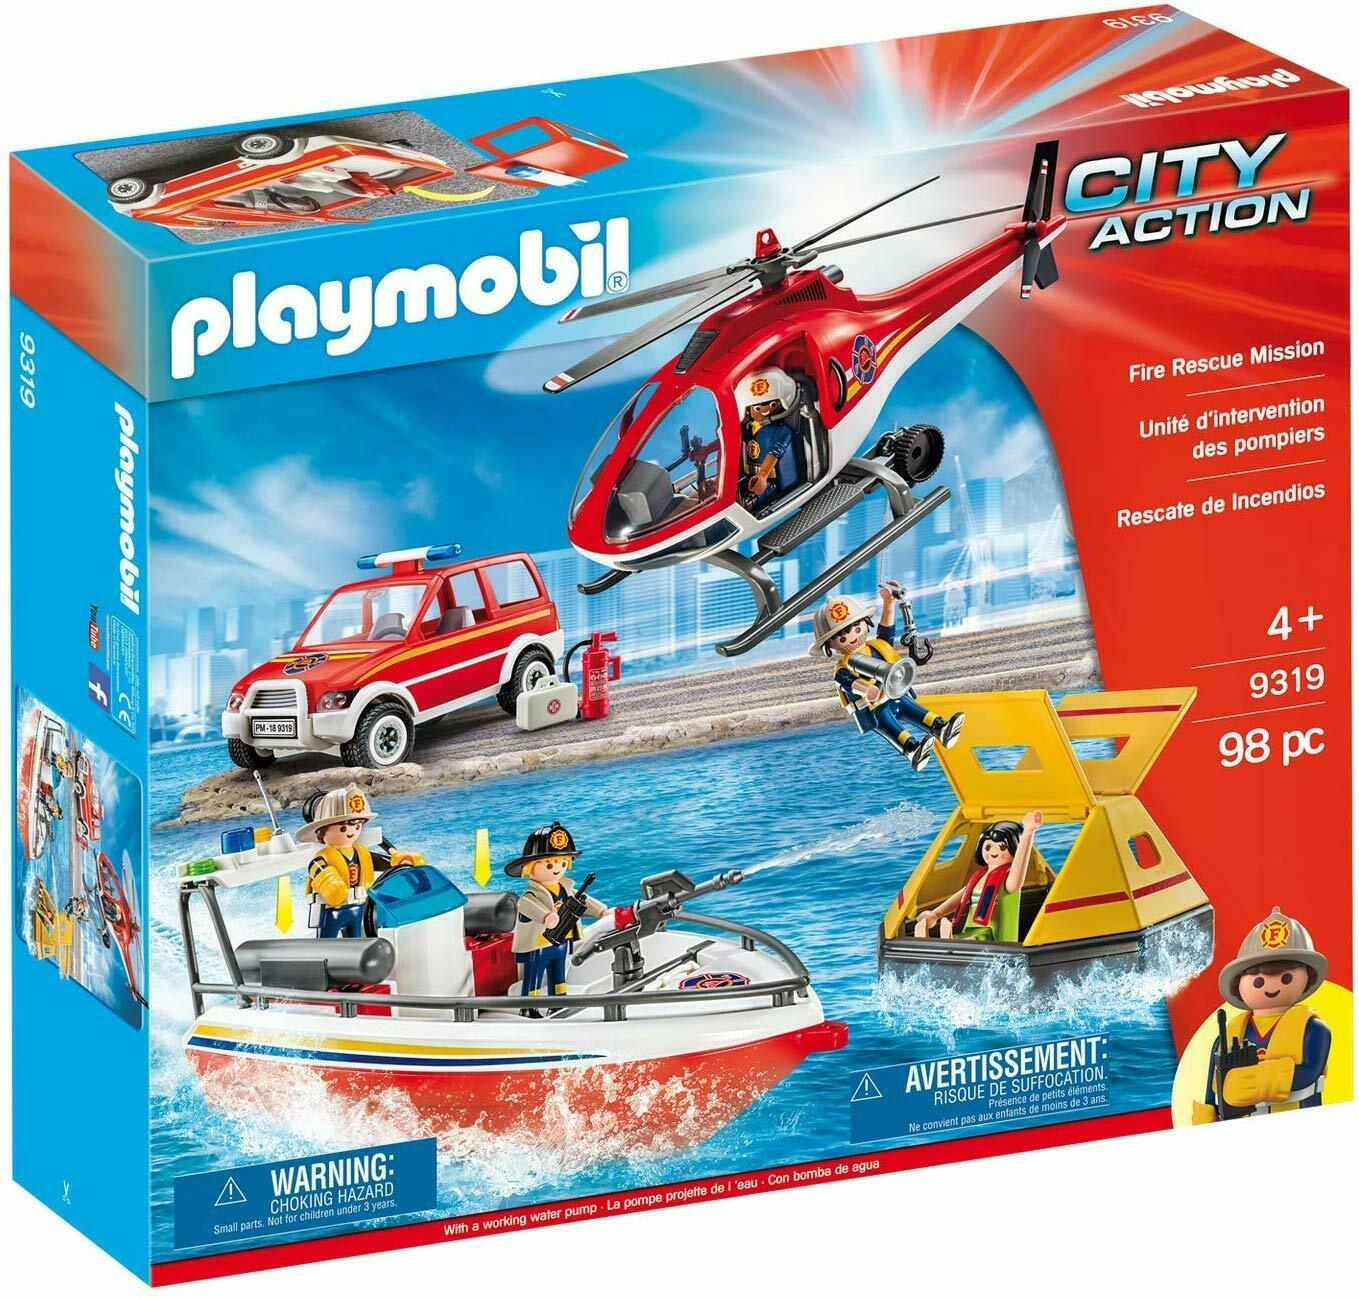 Playmobil City Action 9319 Set Rettung von Wildfire Rescue Mission B-ware